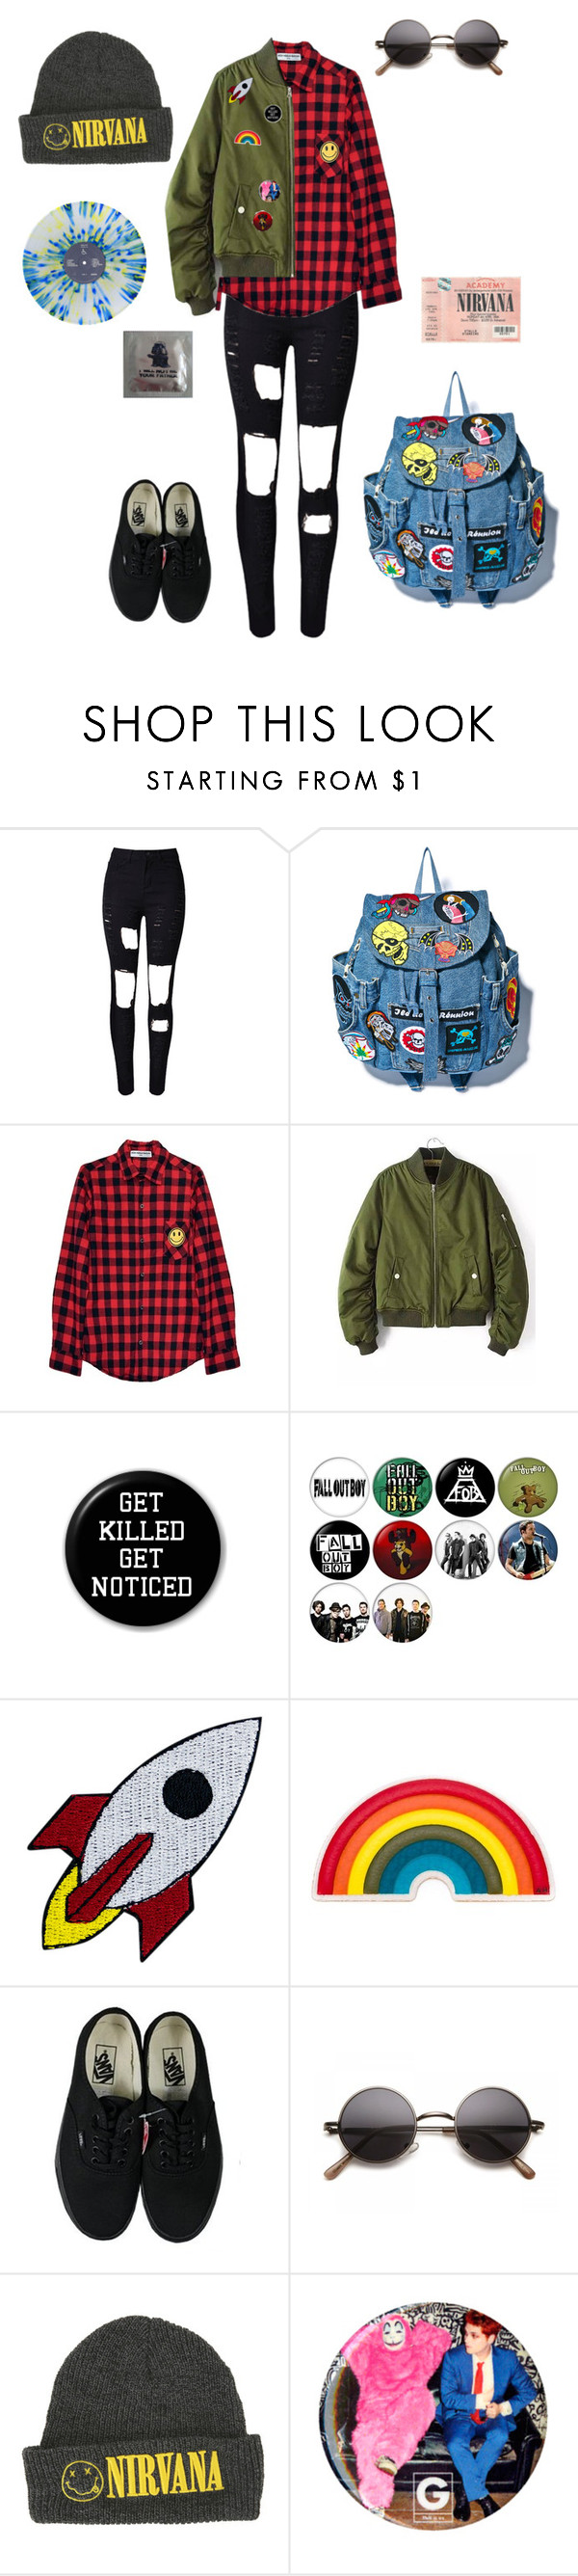 """Cigarettes After Sex"" by wedonthavetolivethisway ❤ liked on Polyvore featuring WithChic, High Heels Suicide, Anya Hindmarch and Vans"